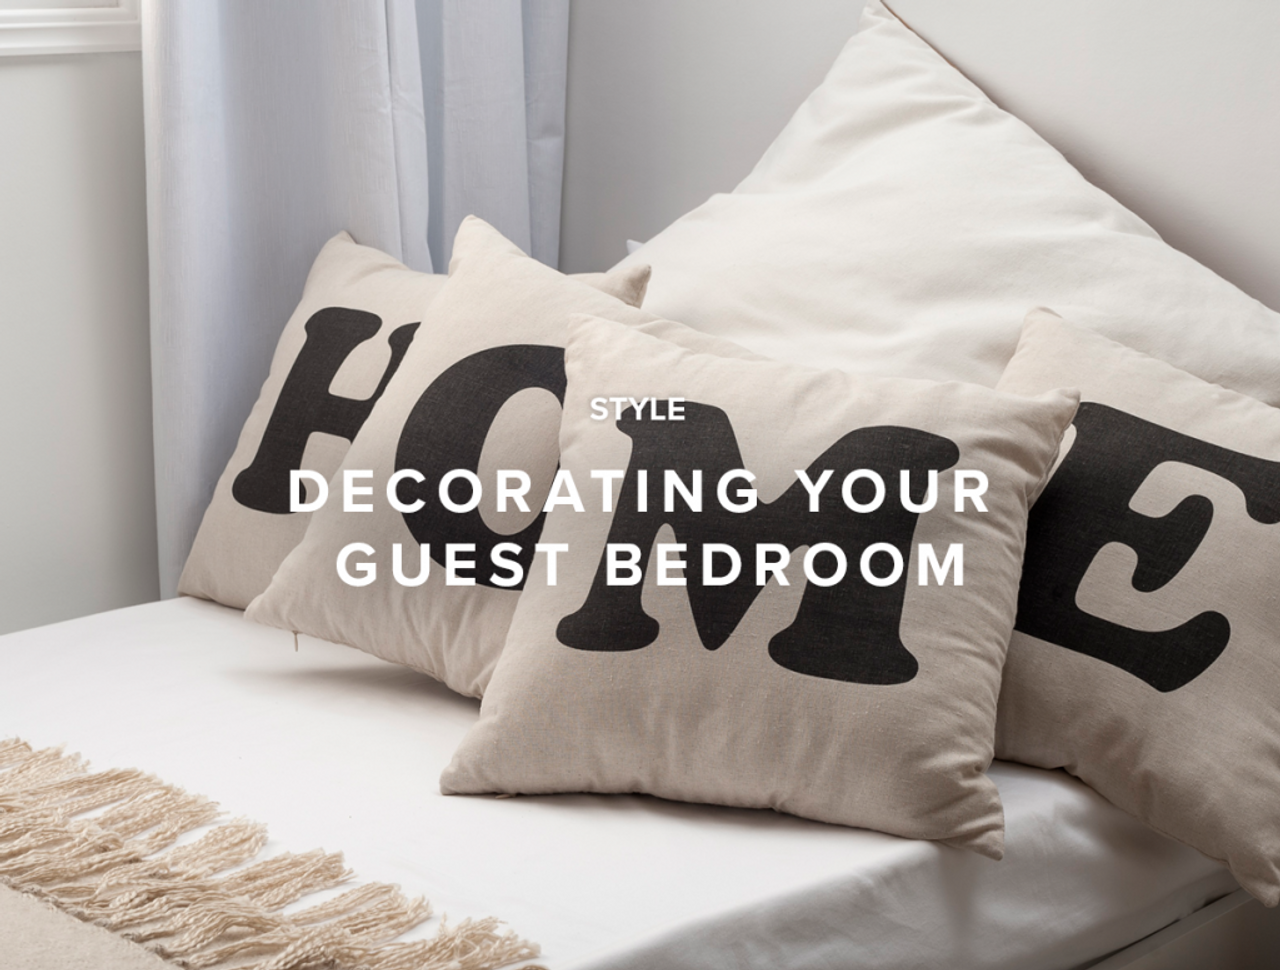 Decorating your Guest Bedroom